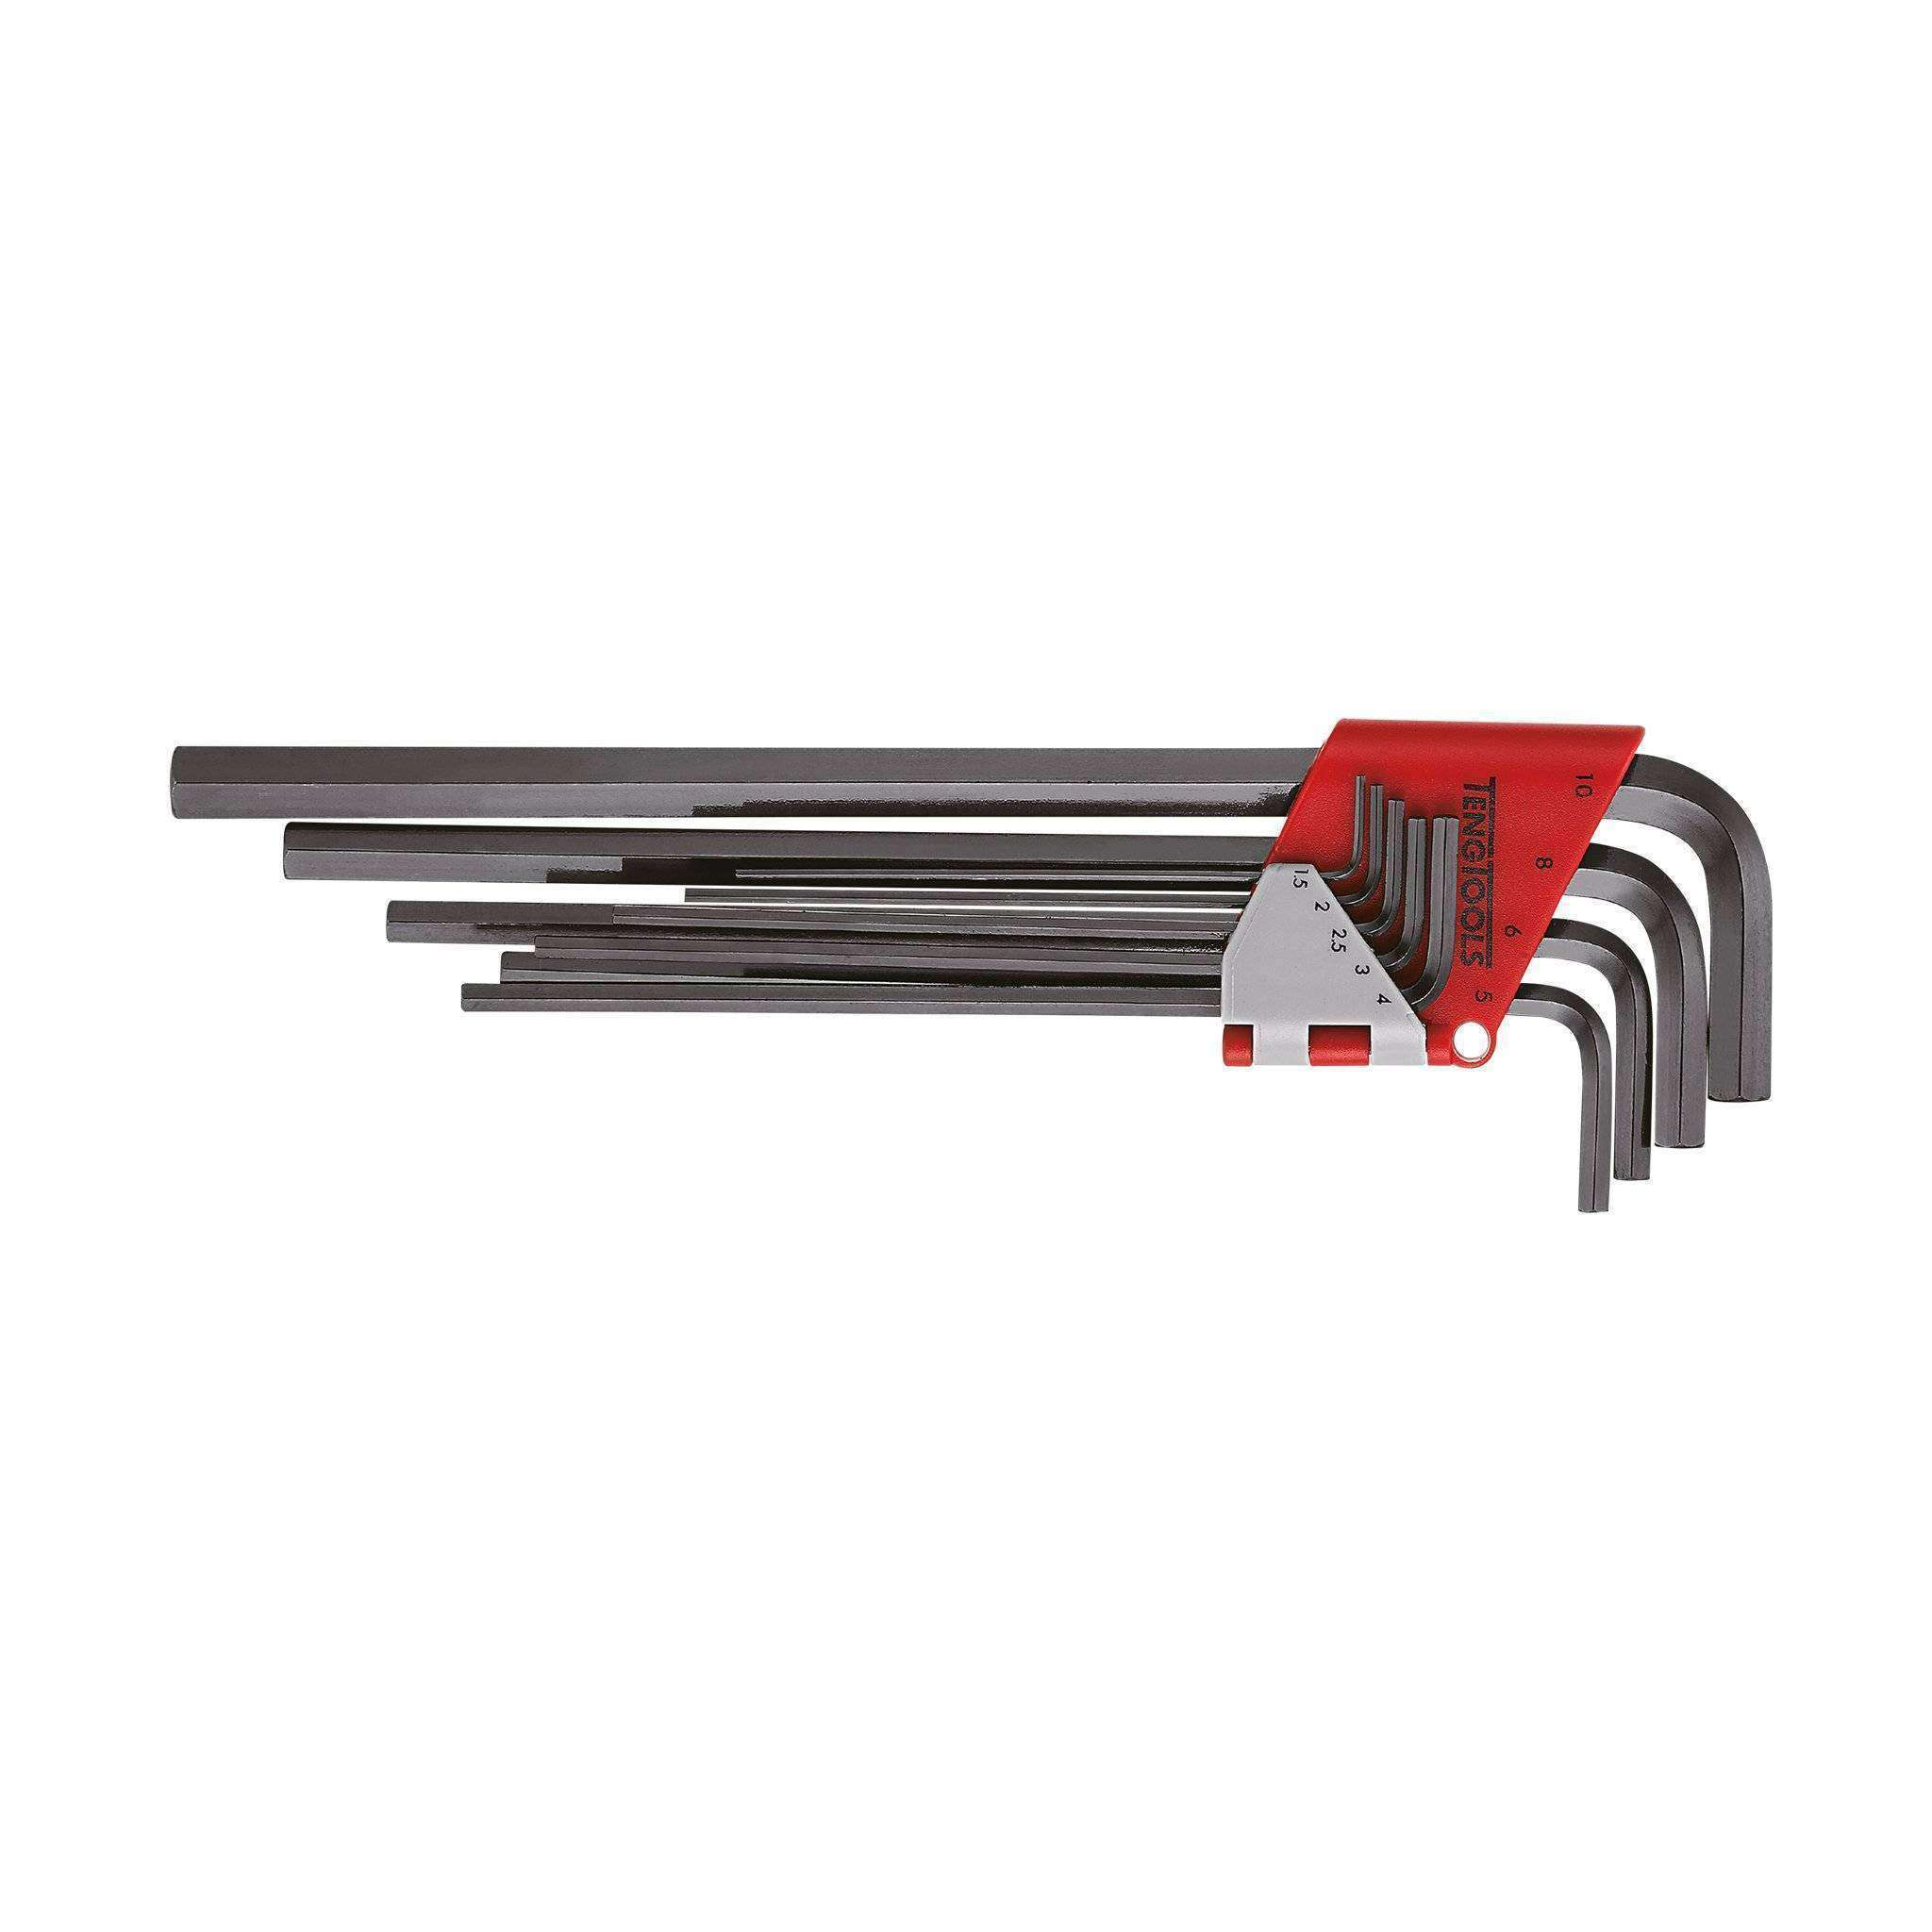 Teng Tools 1479MMRL - 9 Piece Extra Long Metric Hex Key Set - Teng Tools USA